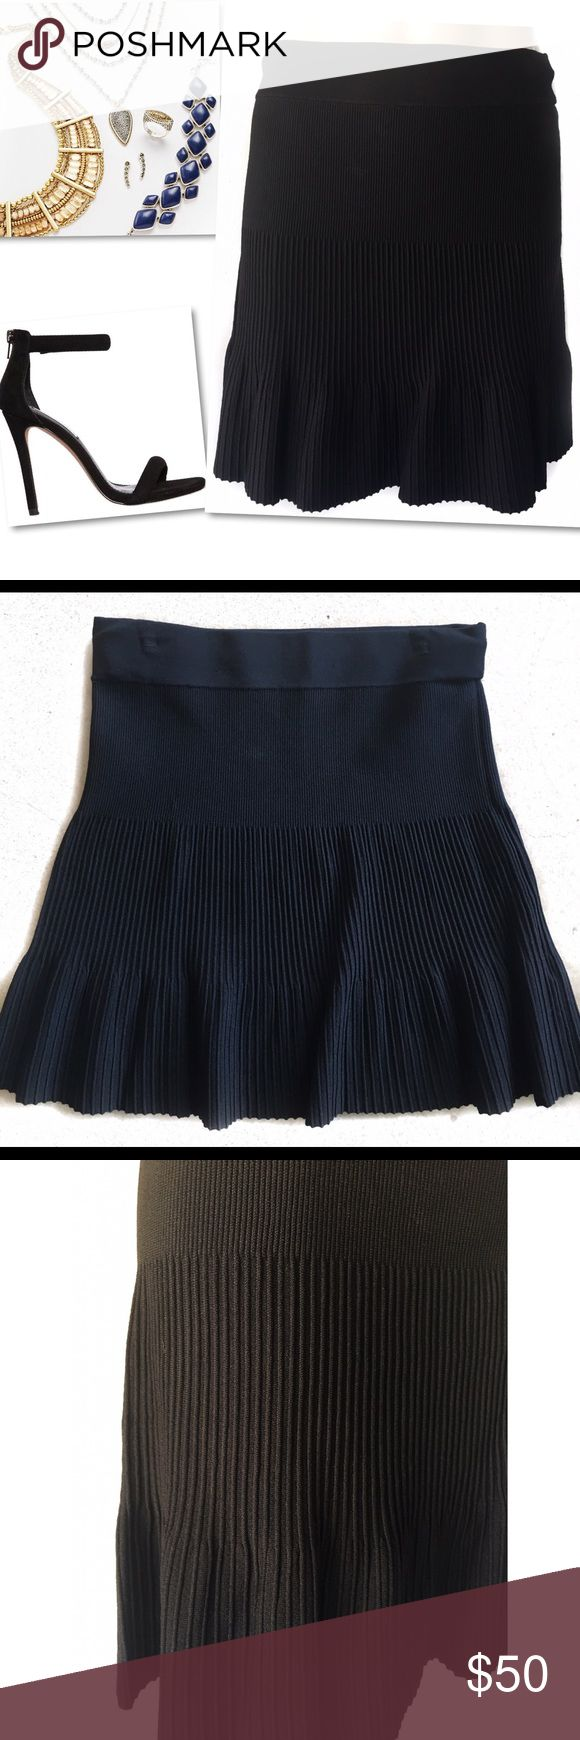 """FRENCH CONNECTION FCUK BLACK ACCORDION SKIRT SZ 8 FRENCH CONNECTION  BLACK ACCORDION SKIRT  SZ 8 28""""-34"""" waist (stretches)  18"""" length French Connection Skirts"""